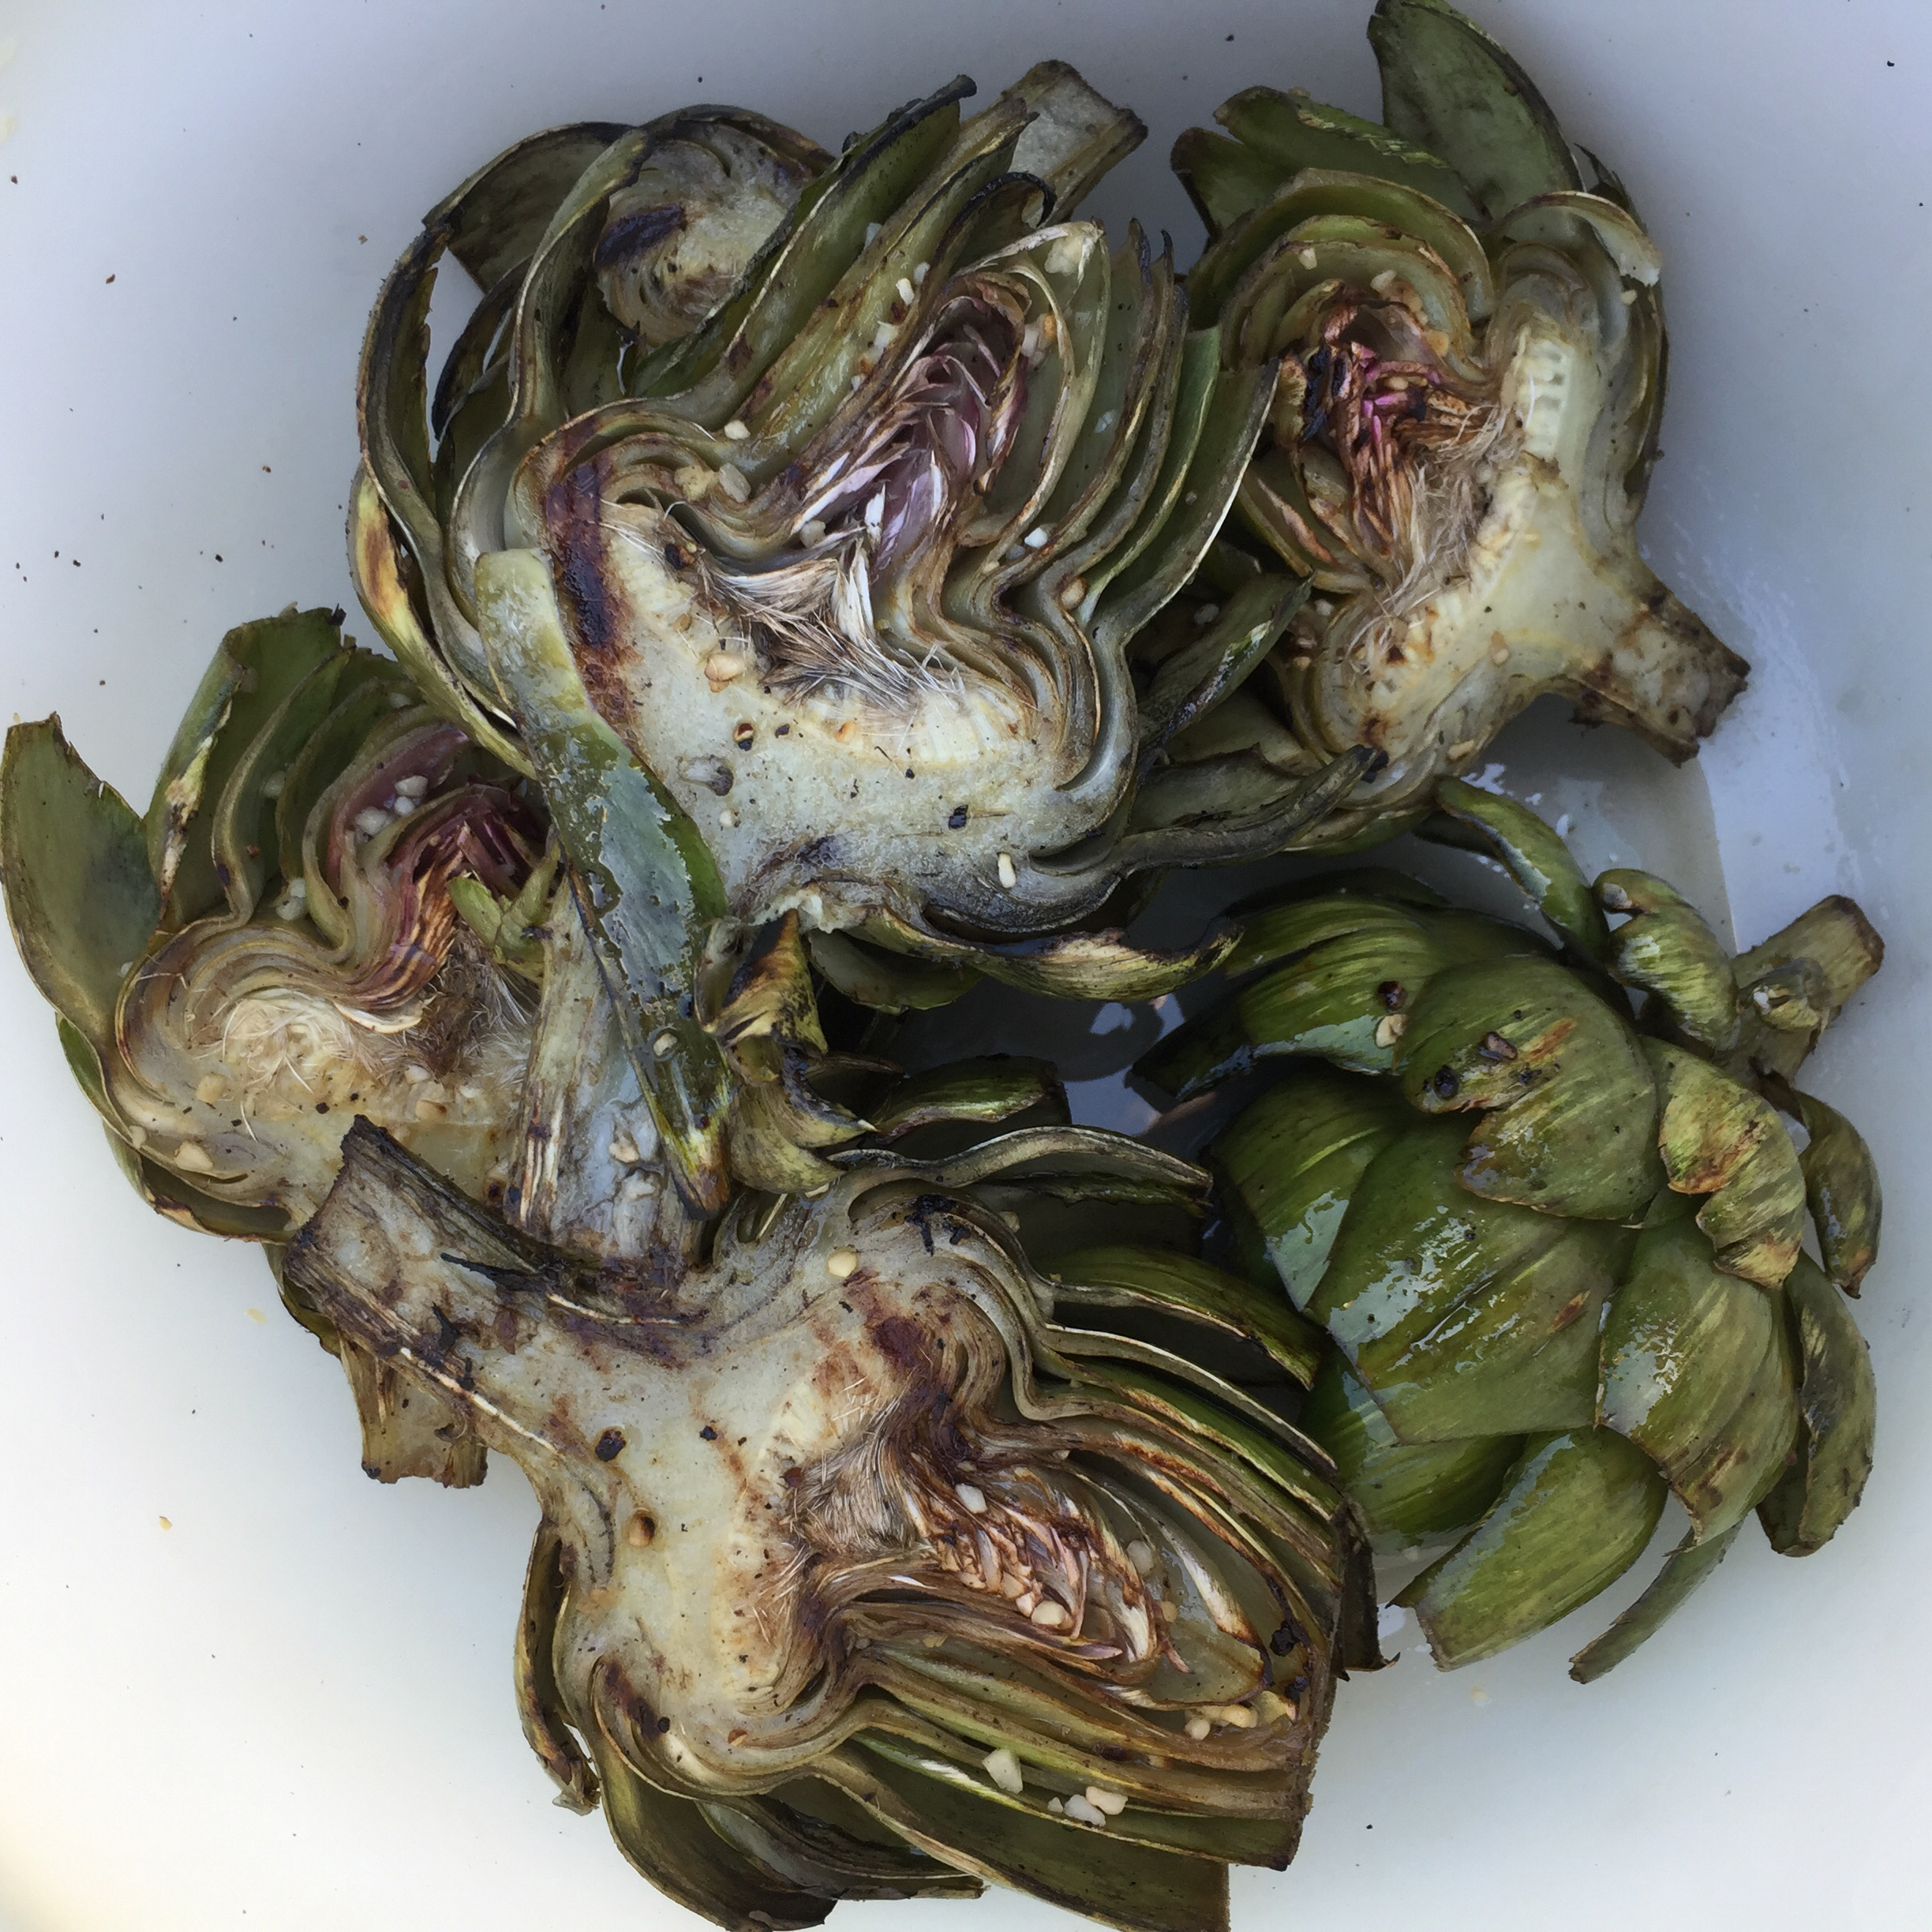 Grilled Garlic Artichokes LaurieM